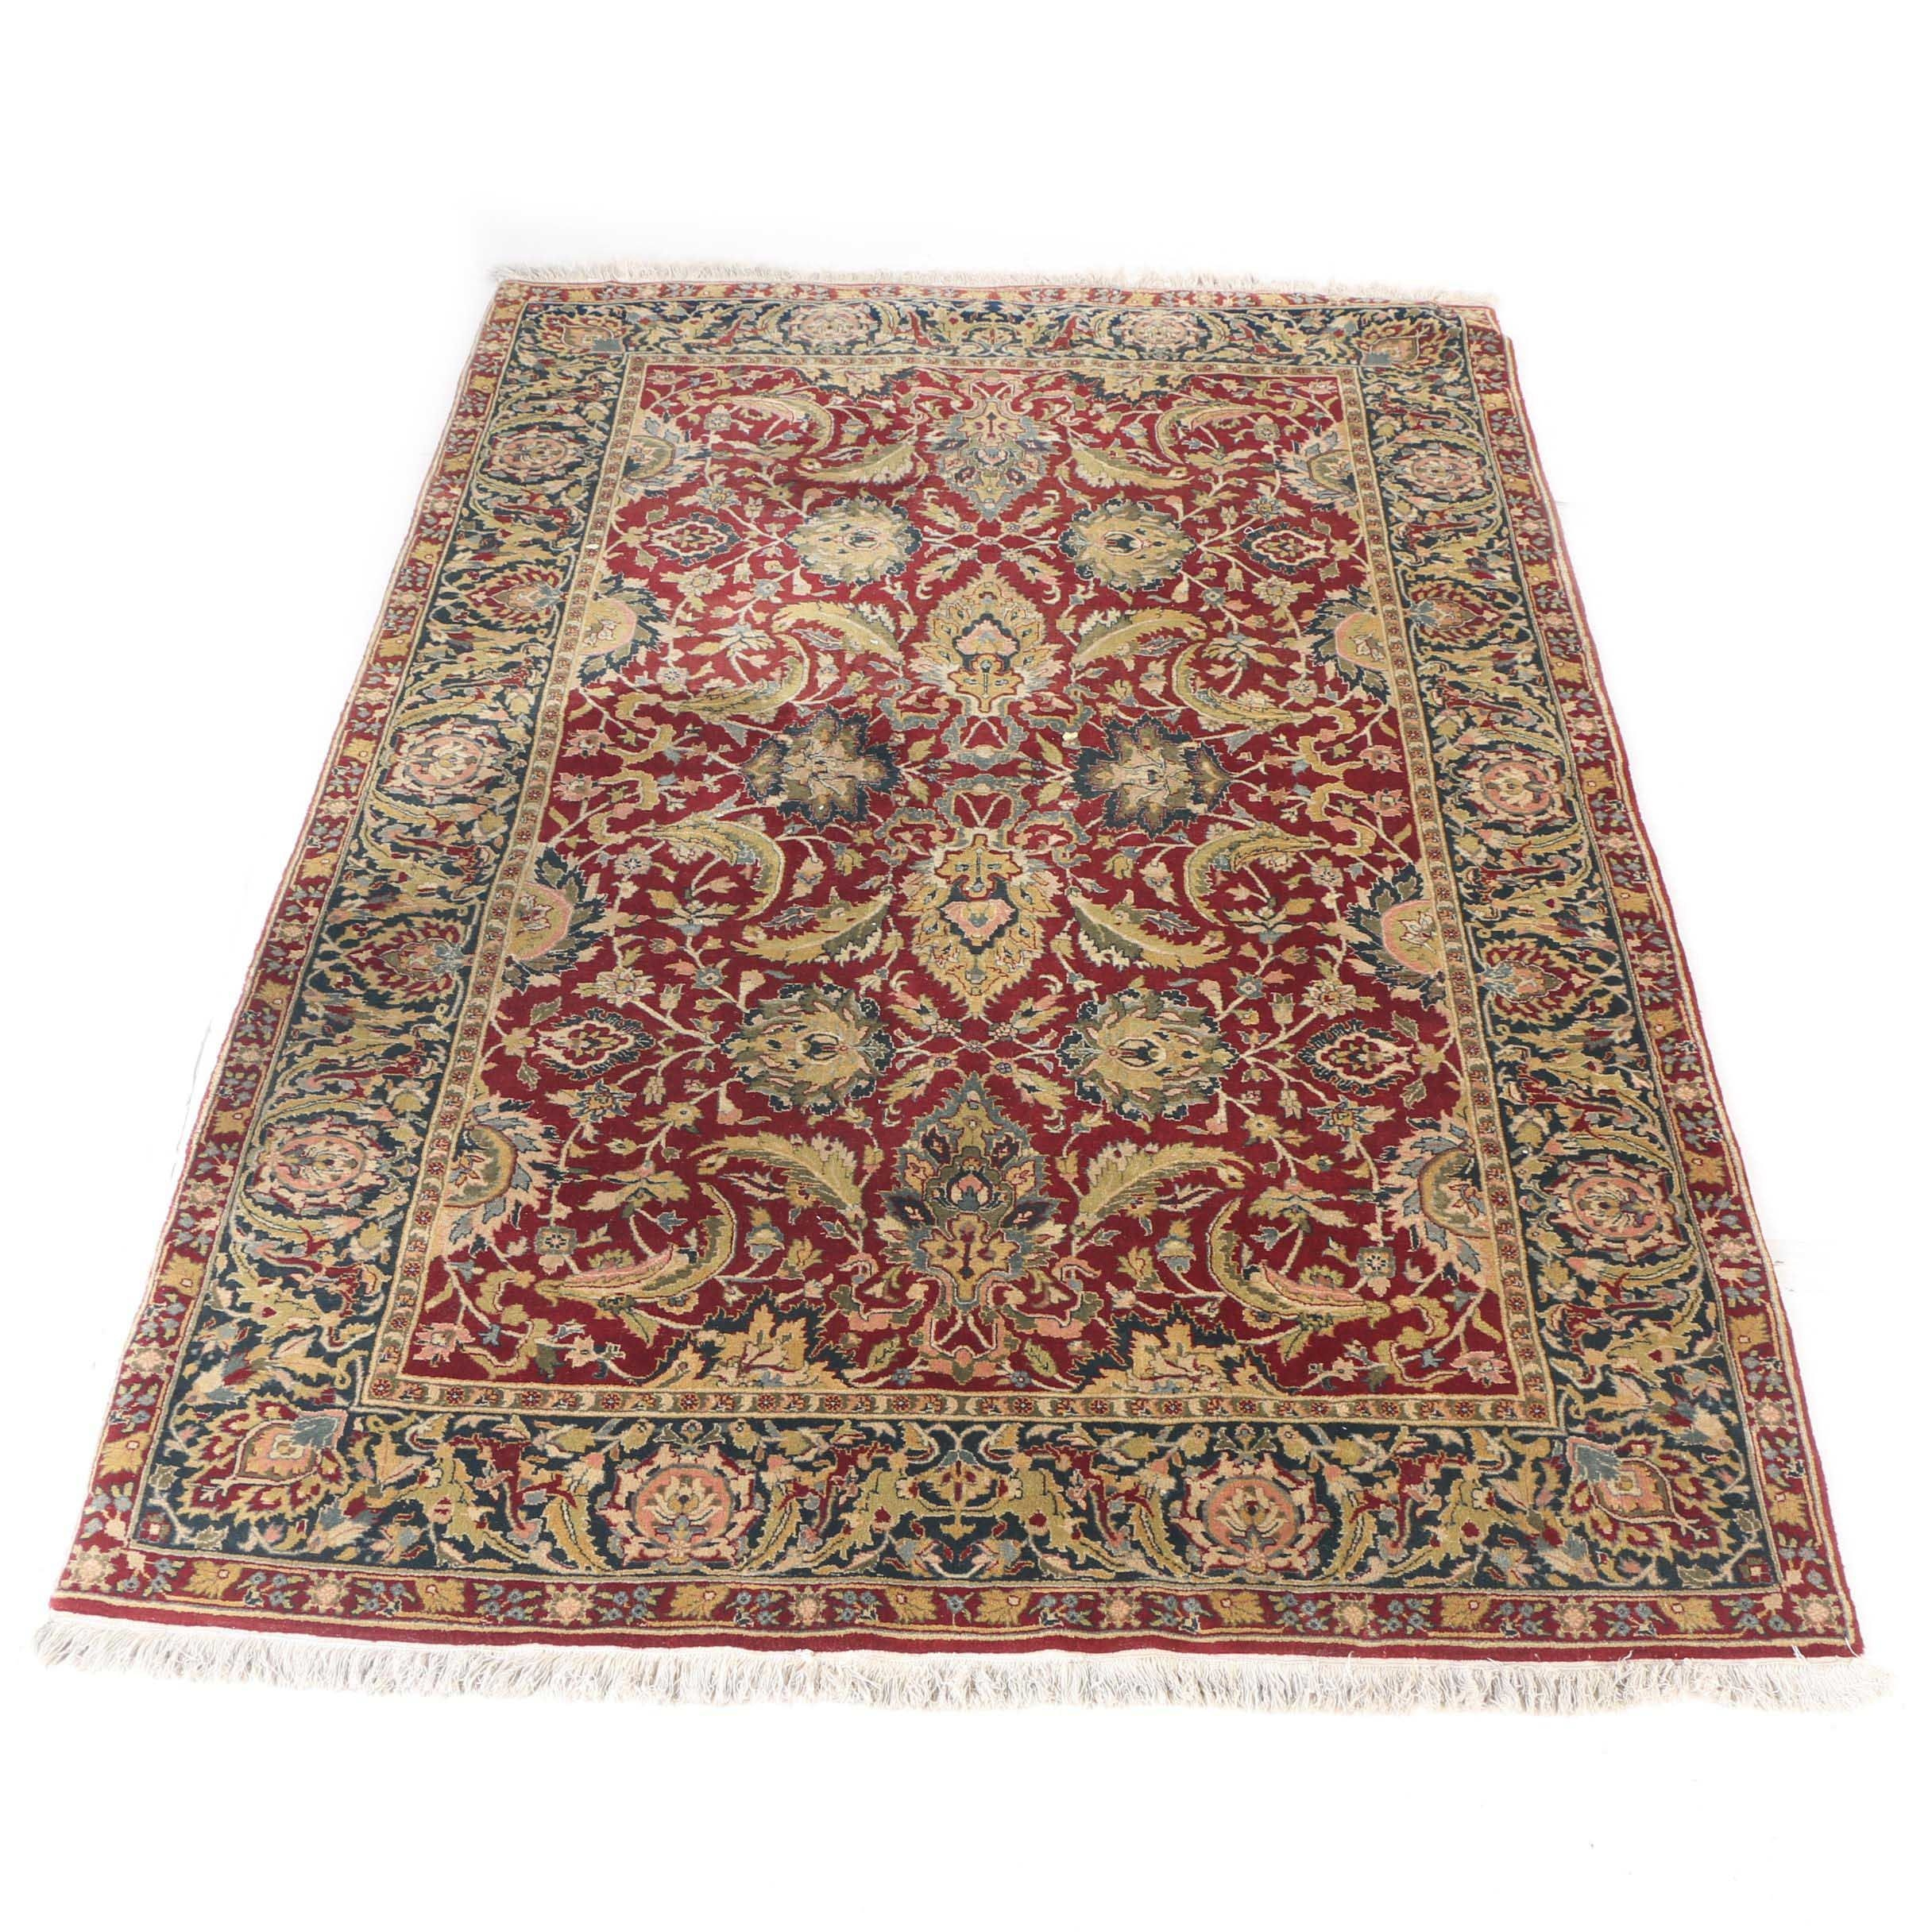 Hand-Knotted Kaleen Indo-Persian Area Rug